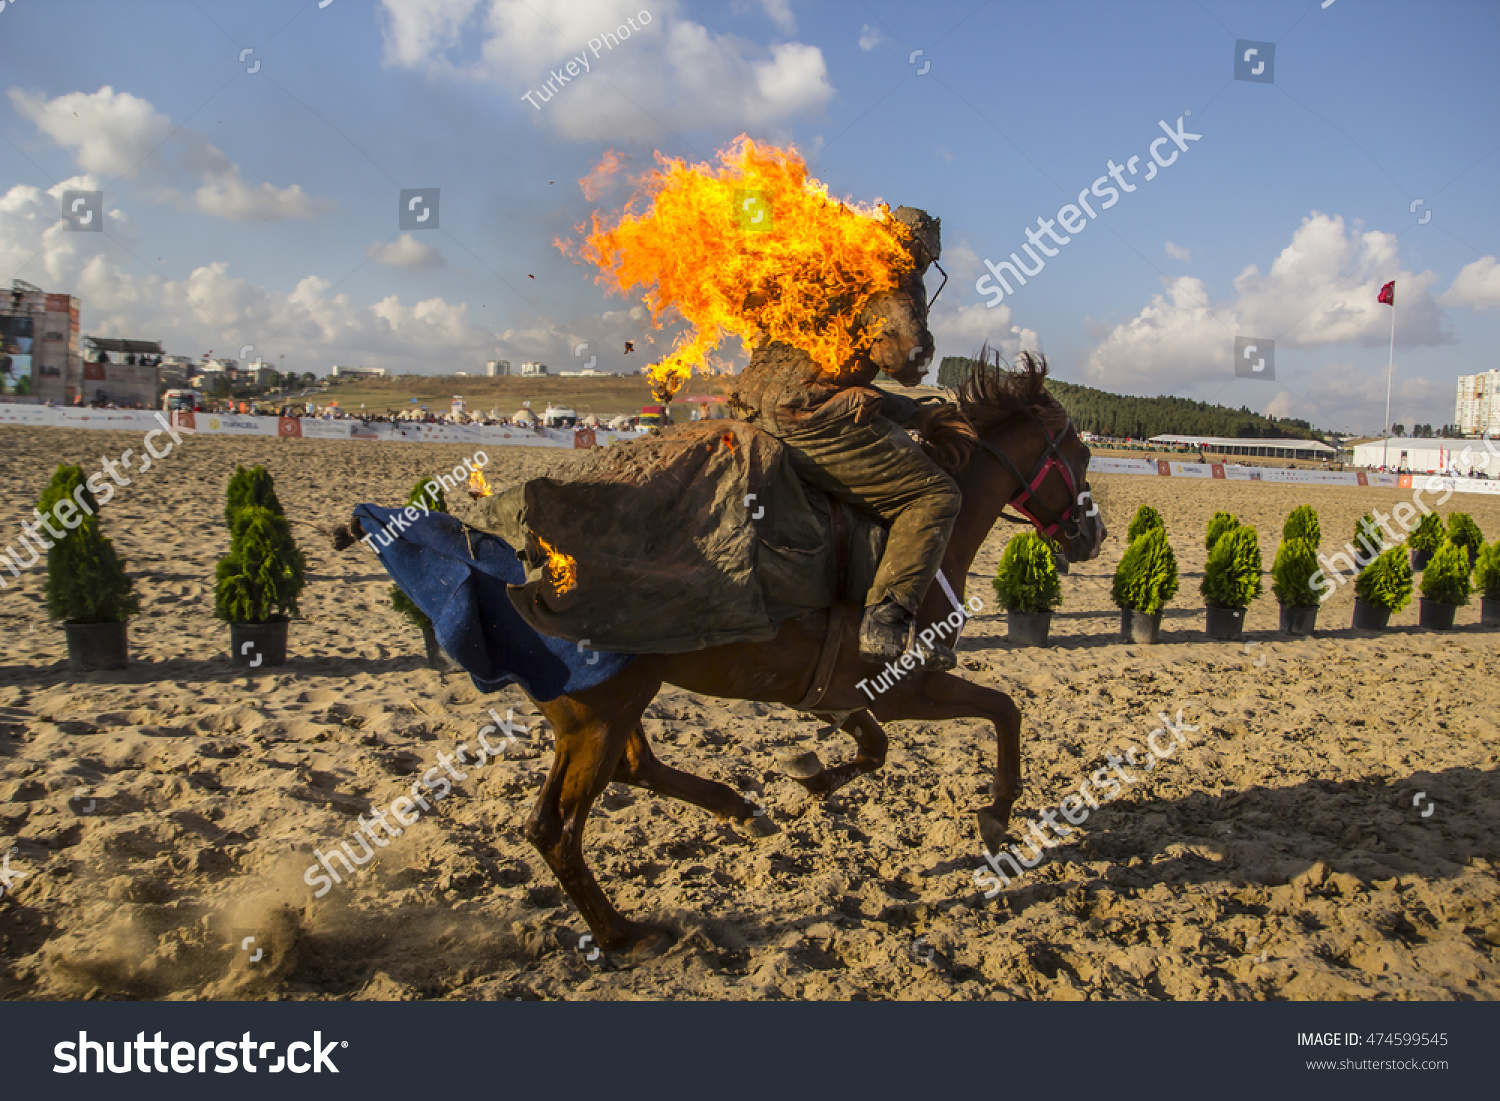 stock-photo-show-is-ottoman-on-fire-hors